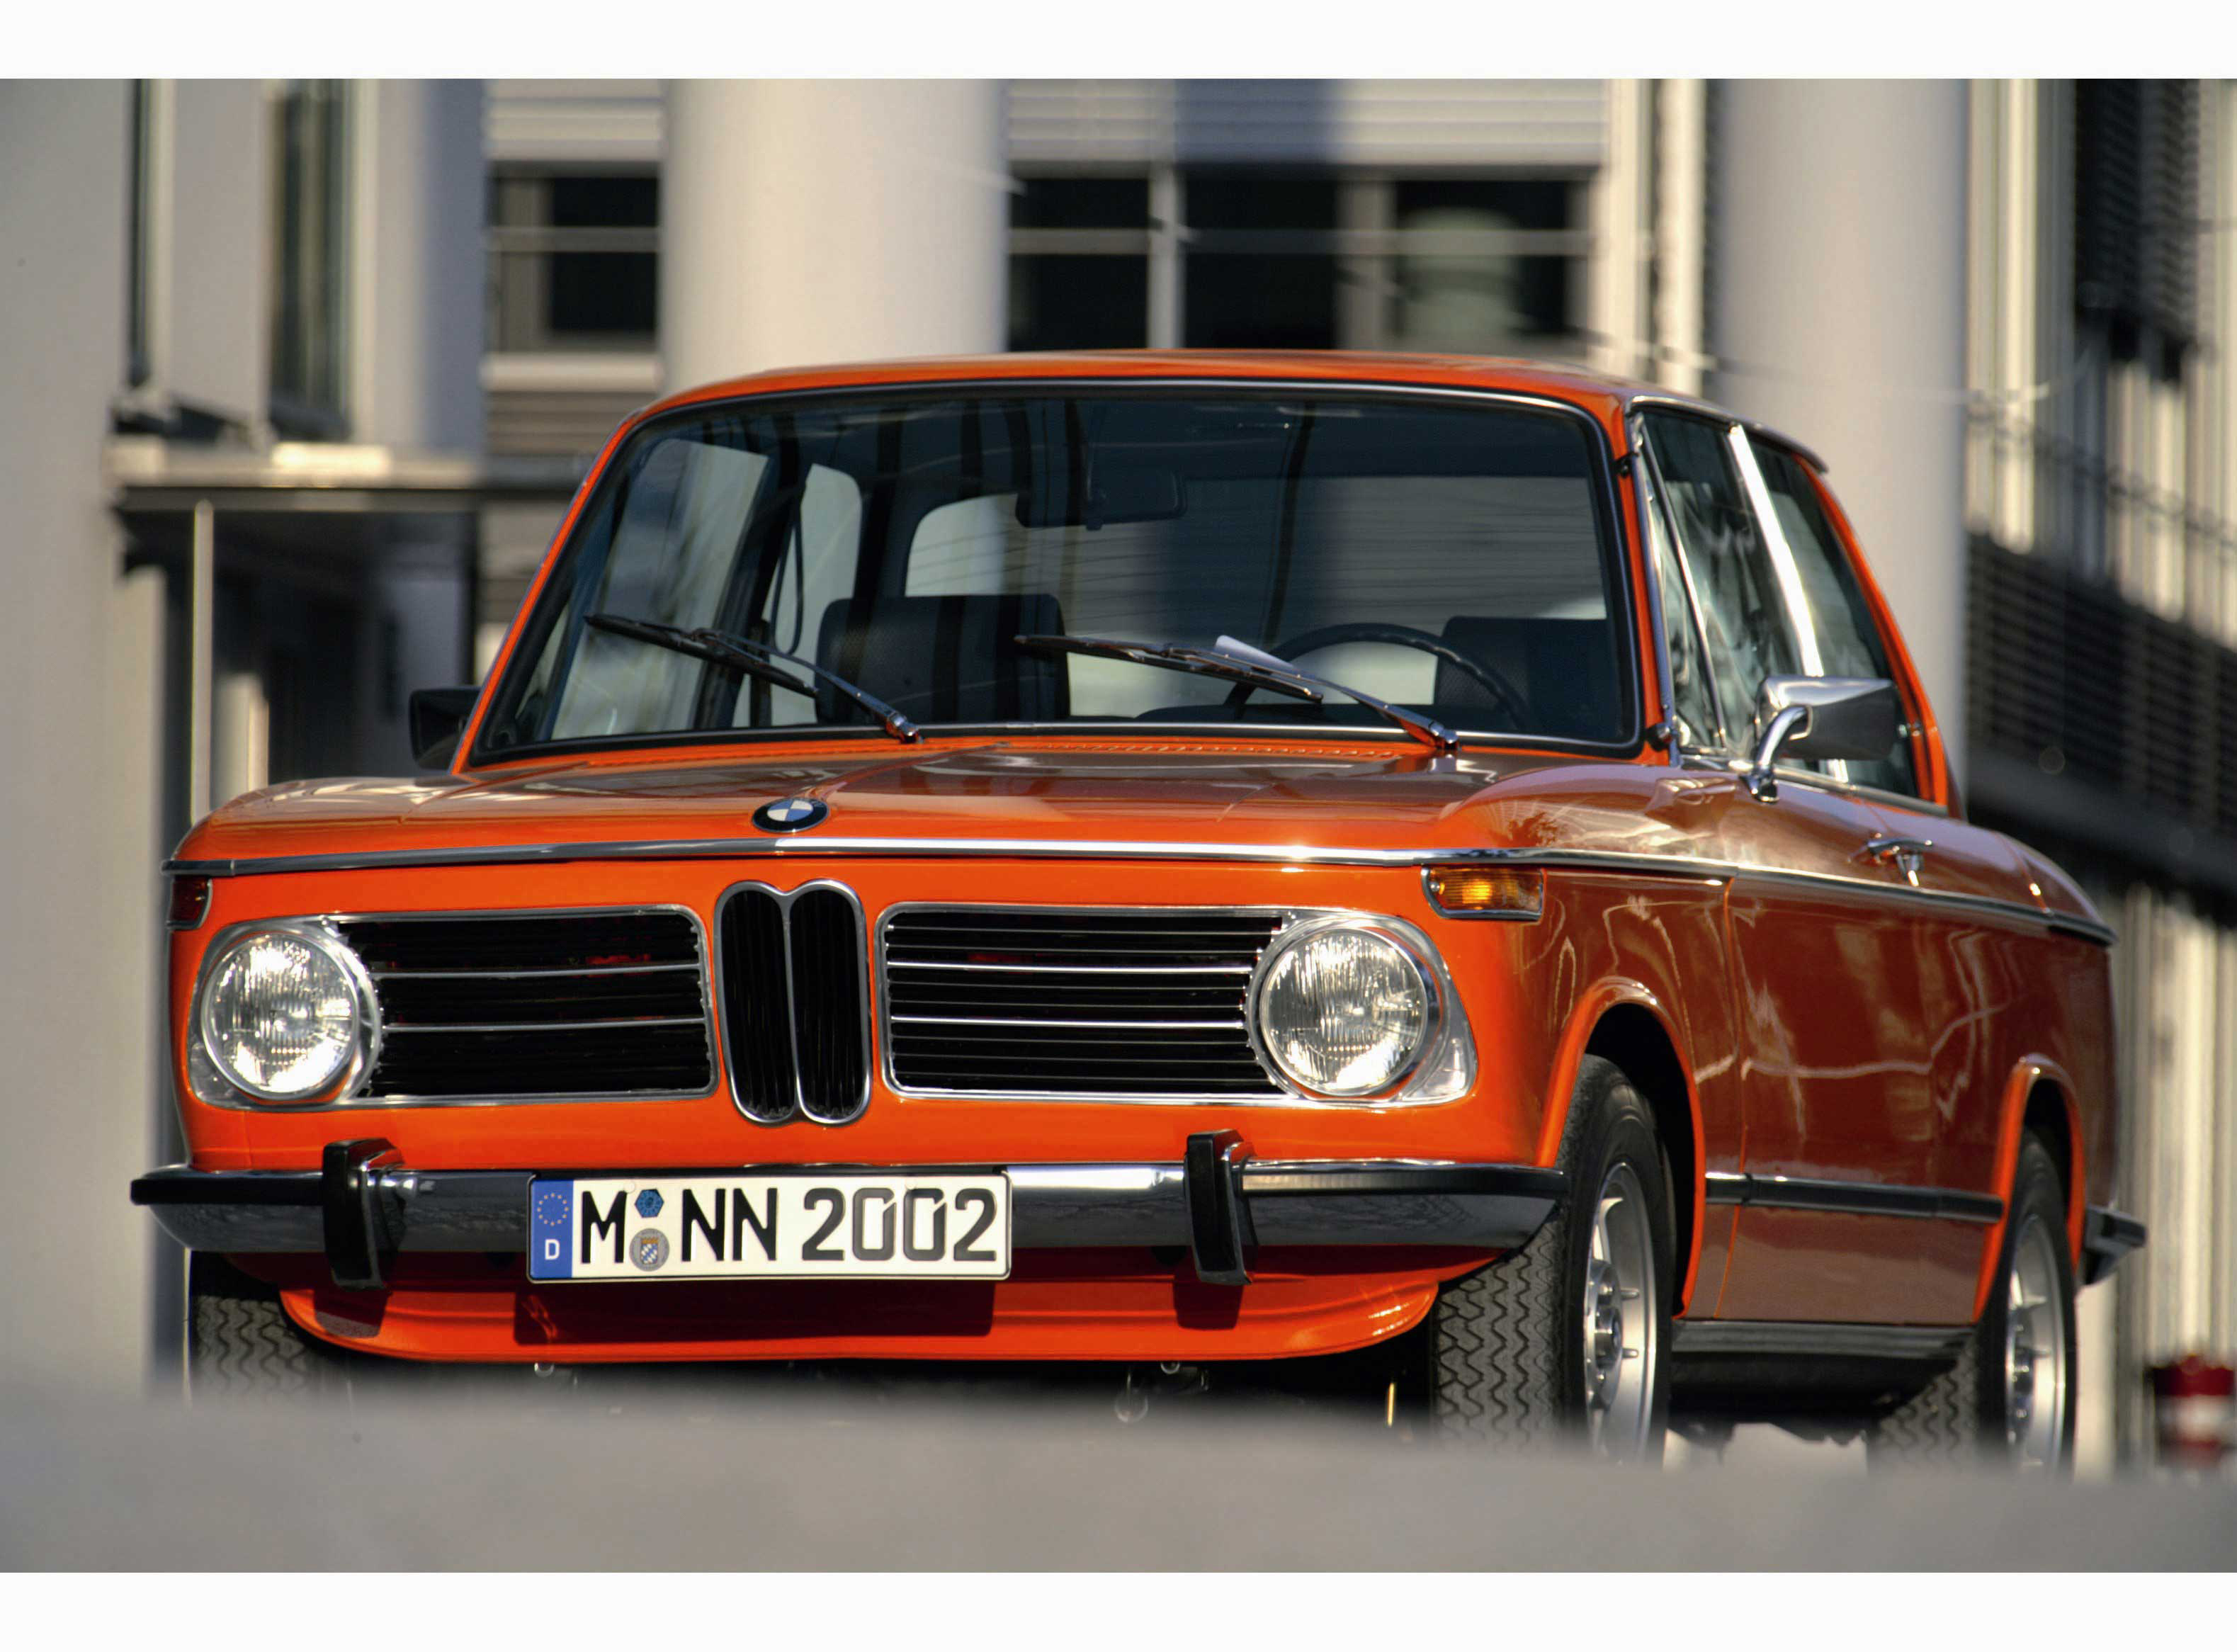 When the past becomes actual today with BMW 2002 1502 model #2